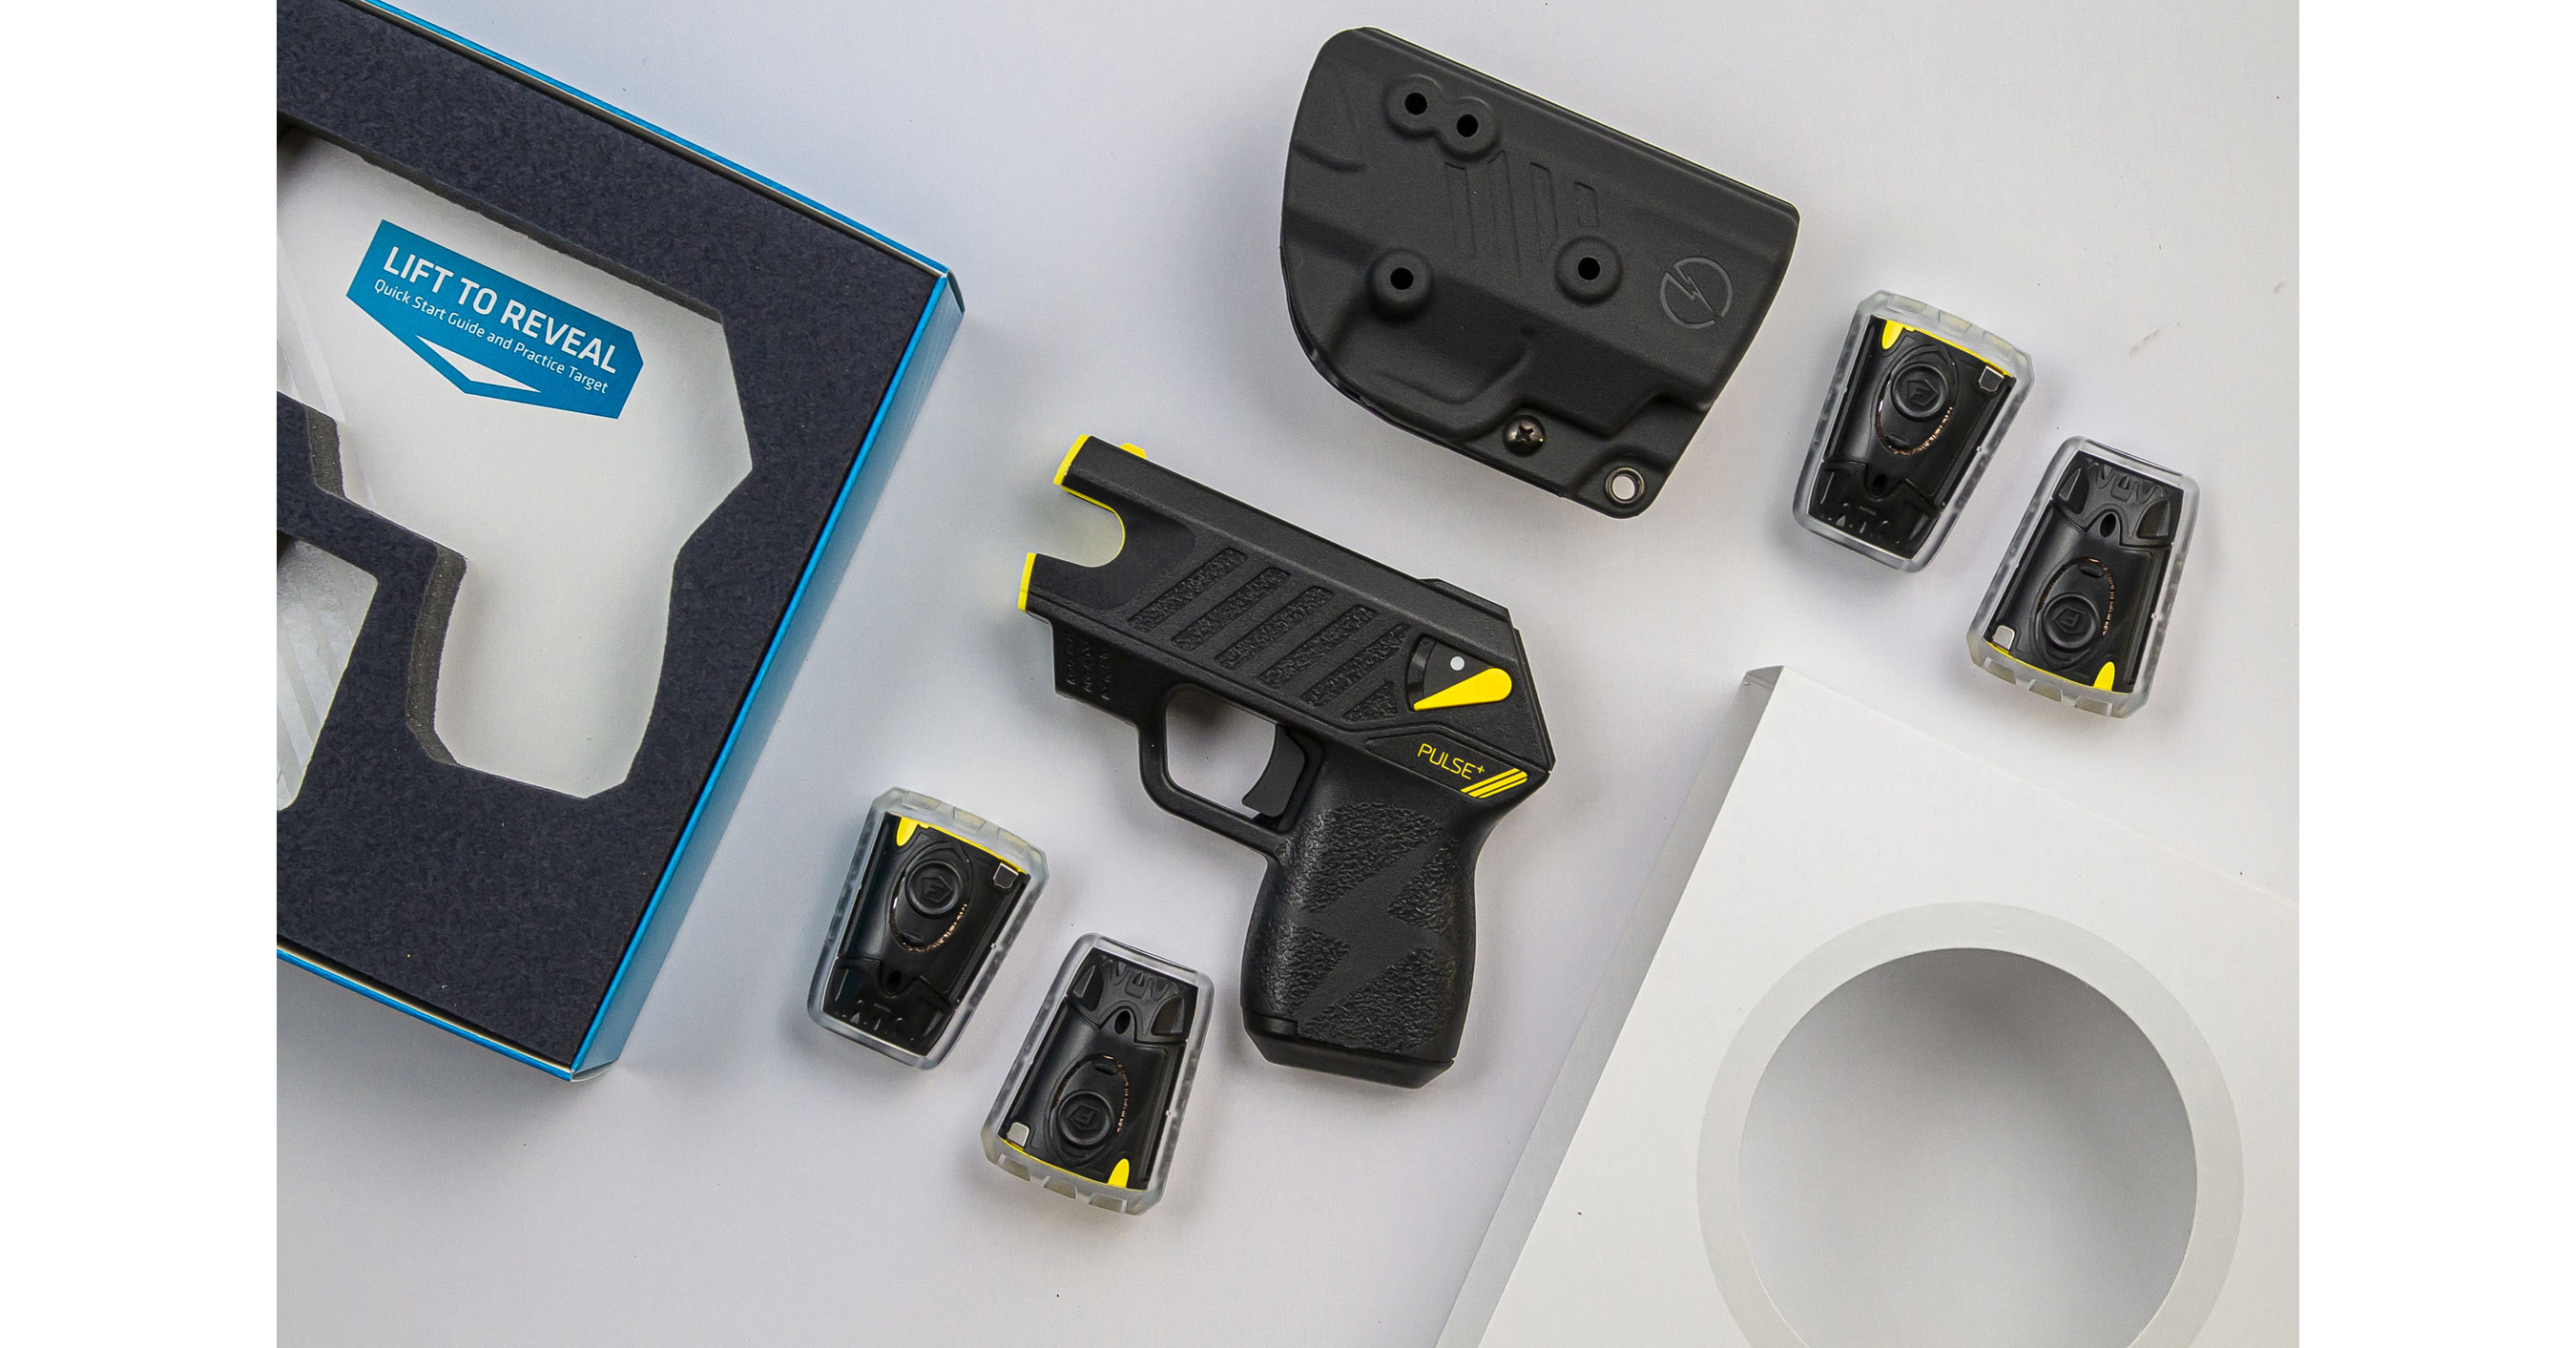 TASER Self-Defense Partners with Krav Maga Worldwide to Bring Safety Tips to Holiday Shoppers